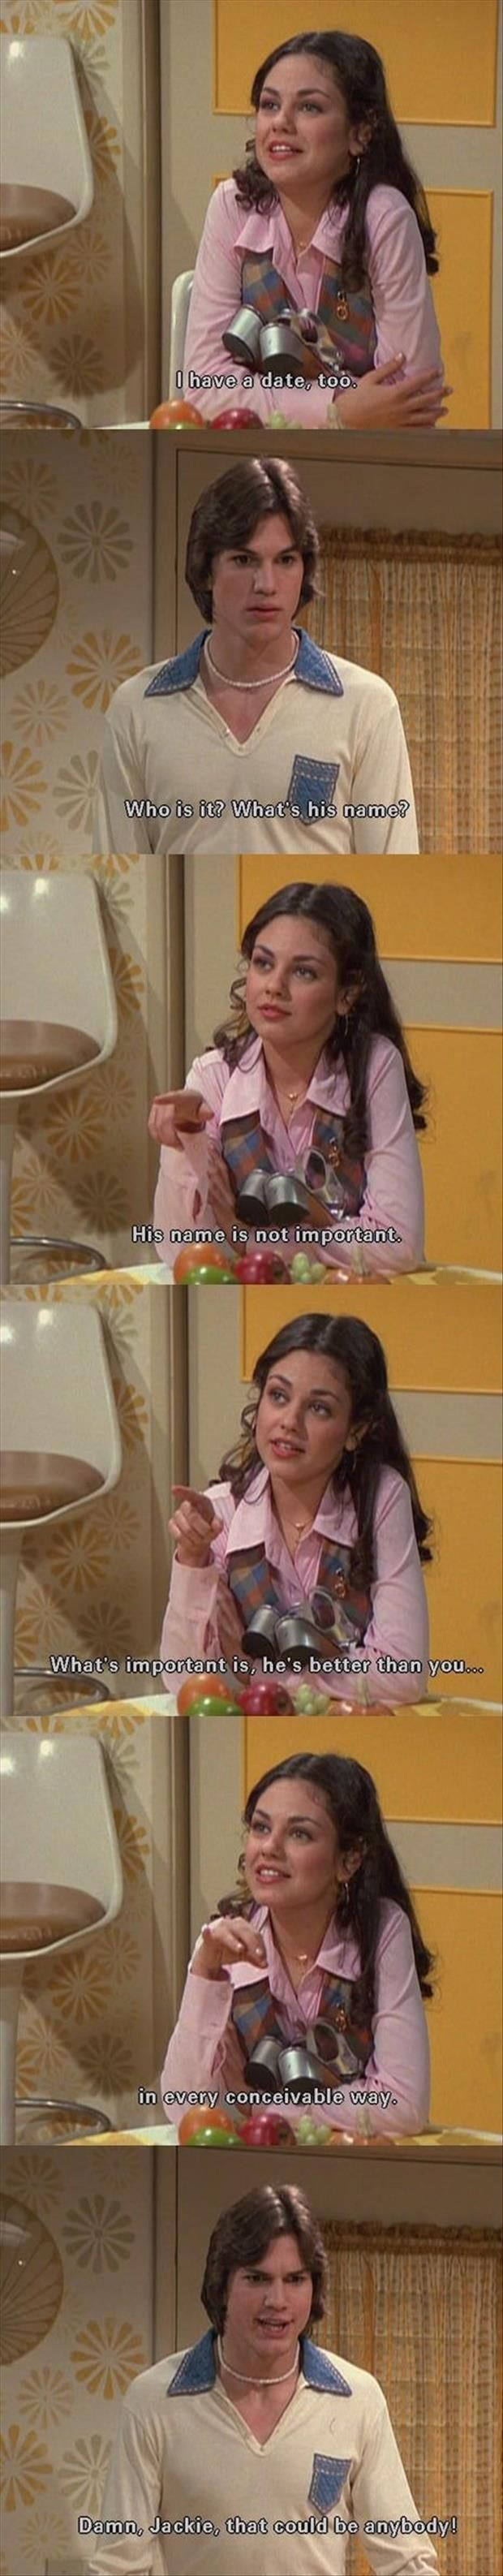 106 best That 70s Show images on Pinterest